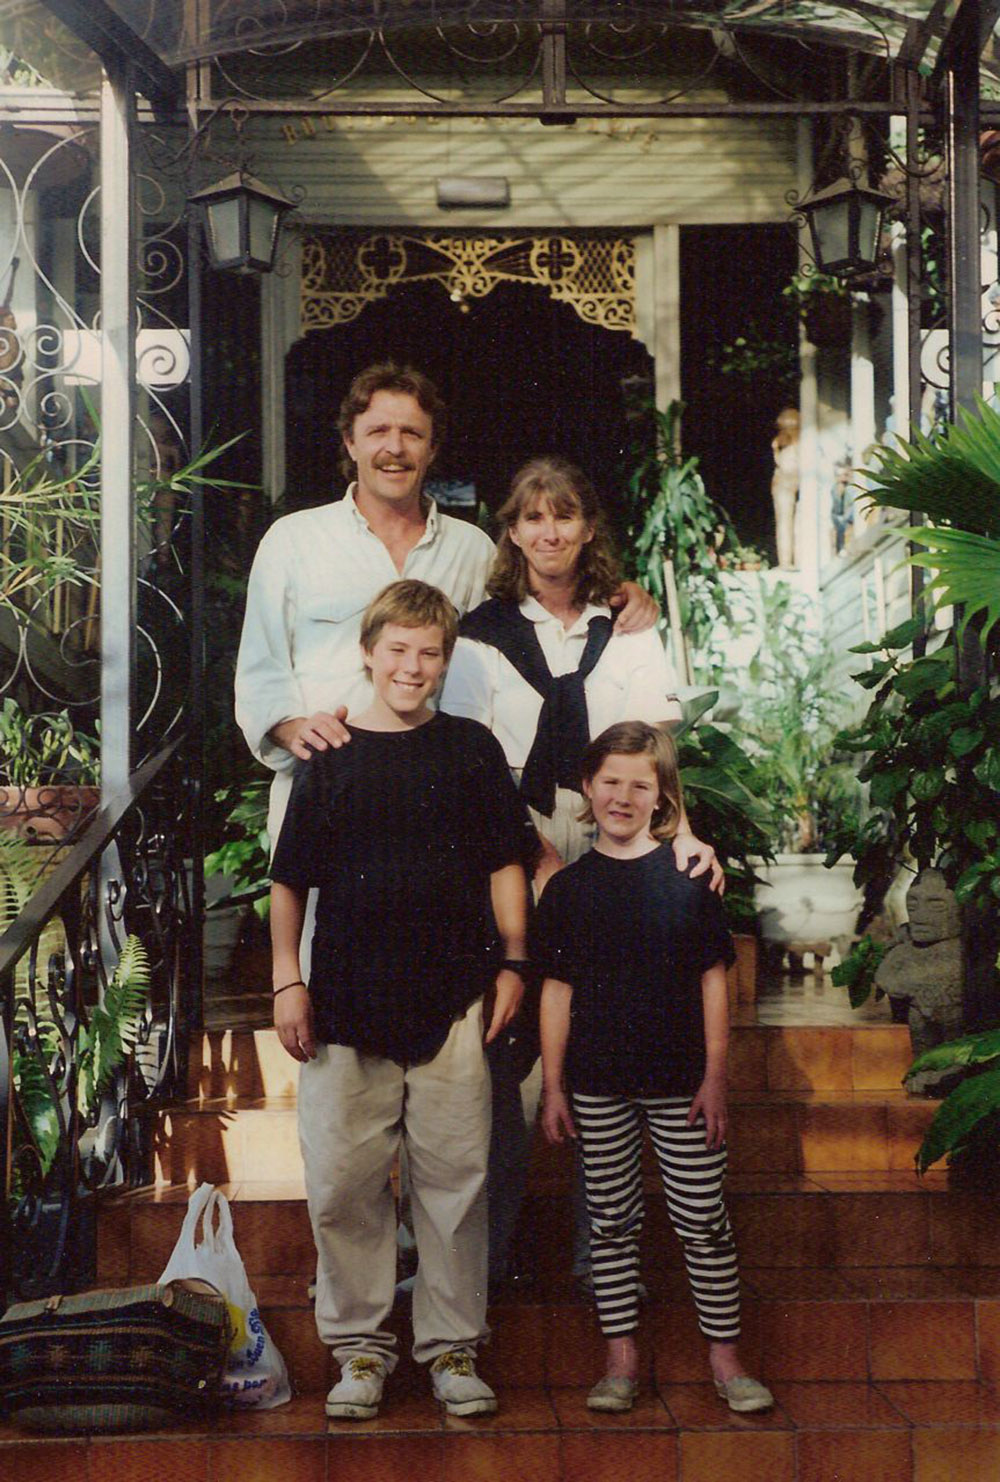 Natalie, Age 7, and Family